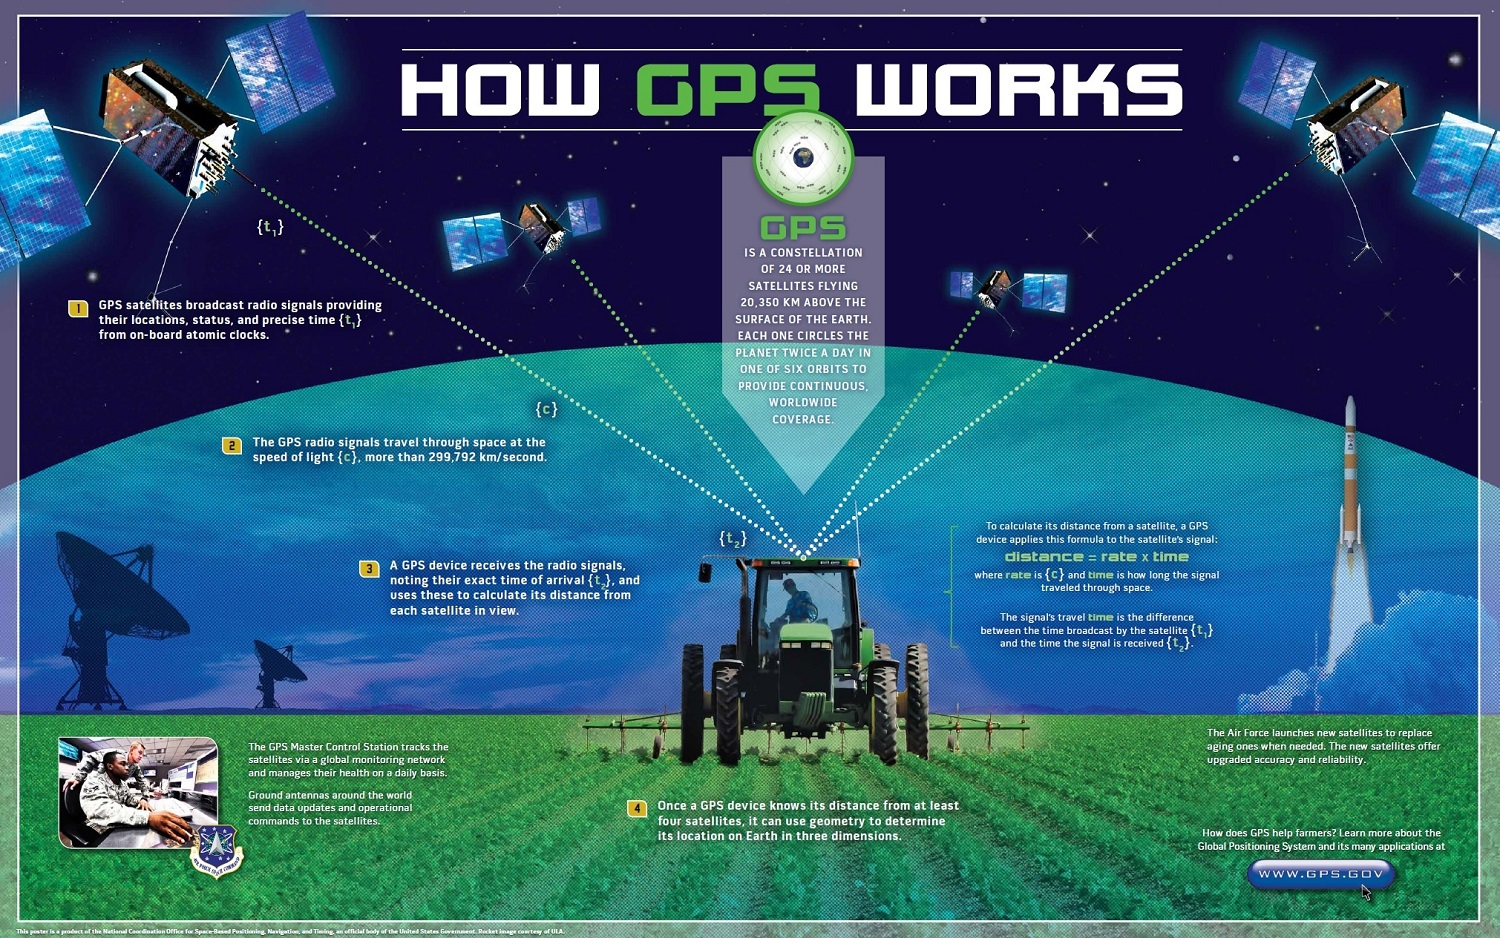 Poster explaining how GPS works showing four satellites providing position information to a GPS receiver on a tractor.